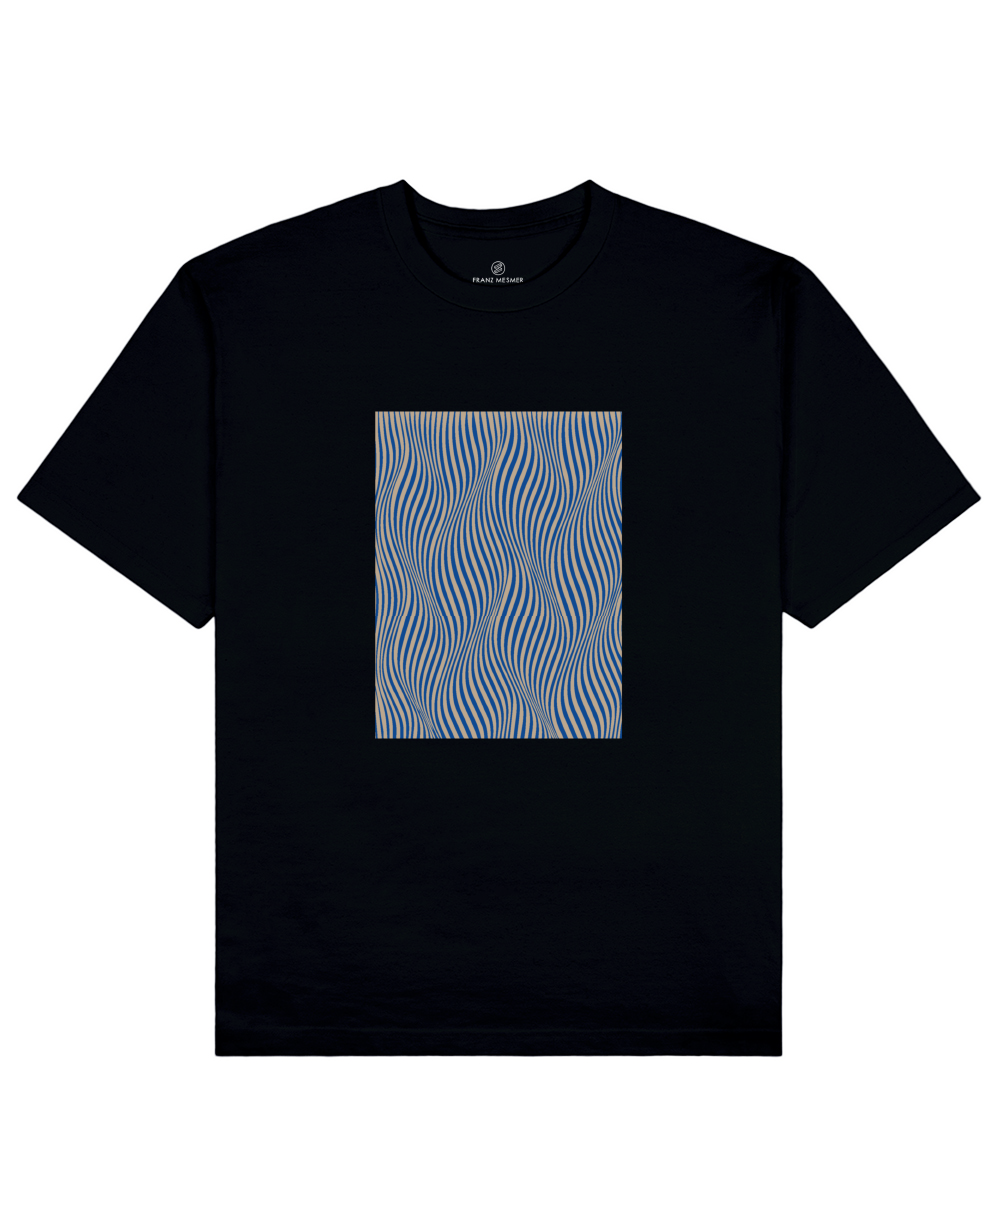 Optical Wave Illusion Print T-Shirt in Black - T-Shirts - Franz Mesmer - BRANMA